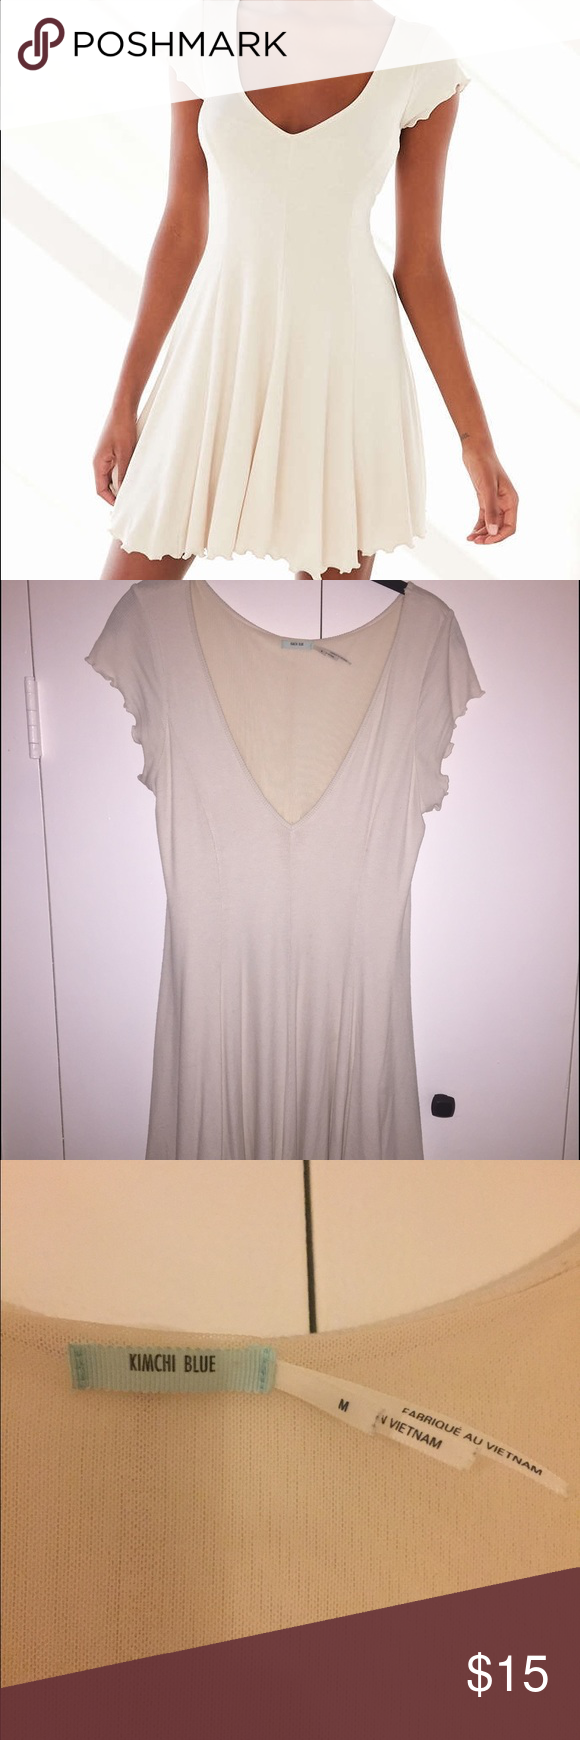 Kimchi Blue Sand Dollar Ribbed Knit T-Shirt Dress Kimchi Blue Sand Dollar Ribbed Knit T-Shirt Dress. Hardly worn. Like new! Soft lining. Super cute and flouncy and bouncy!! Totally casual chic!! Kimchi Blue Dresses Mini